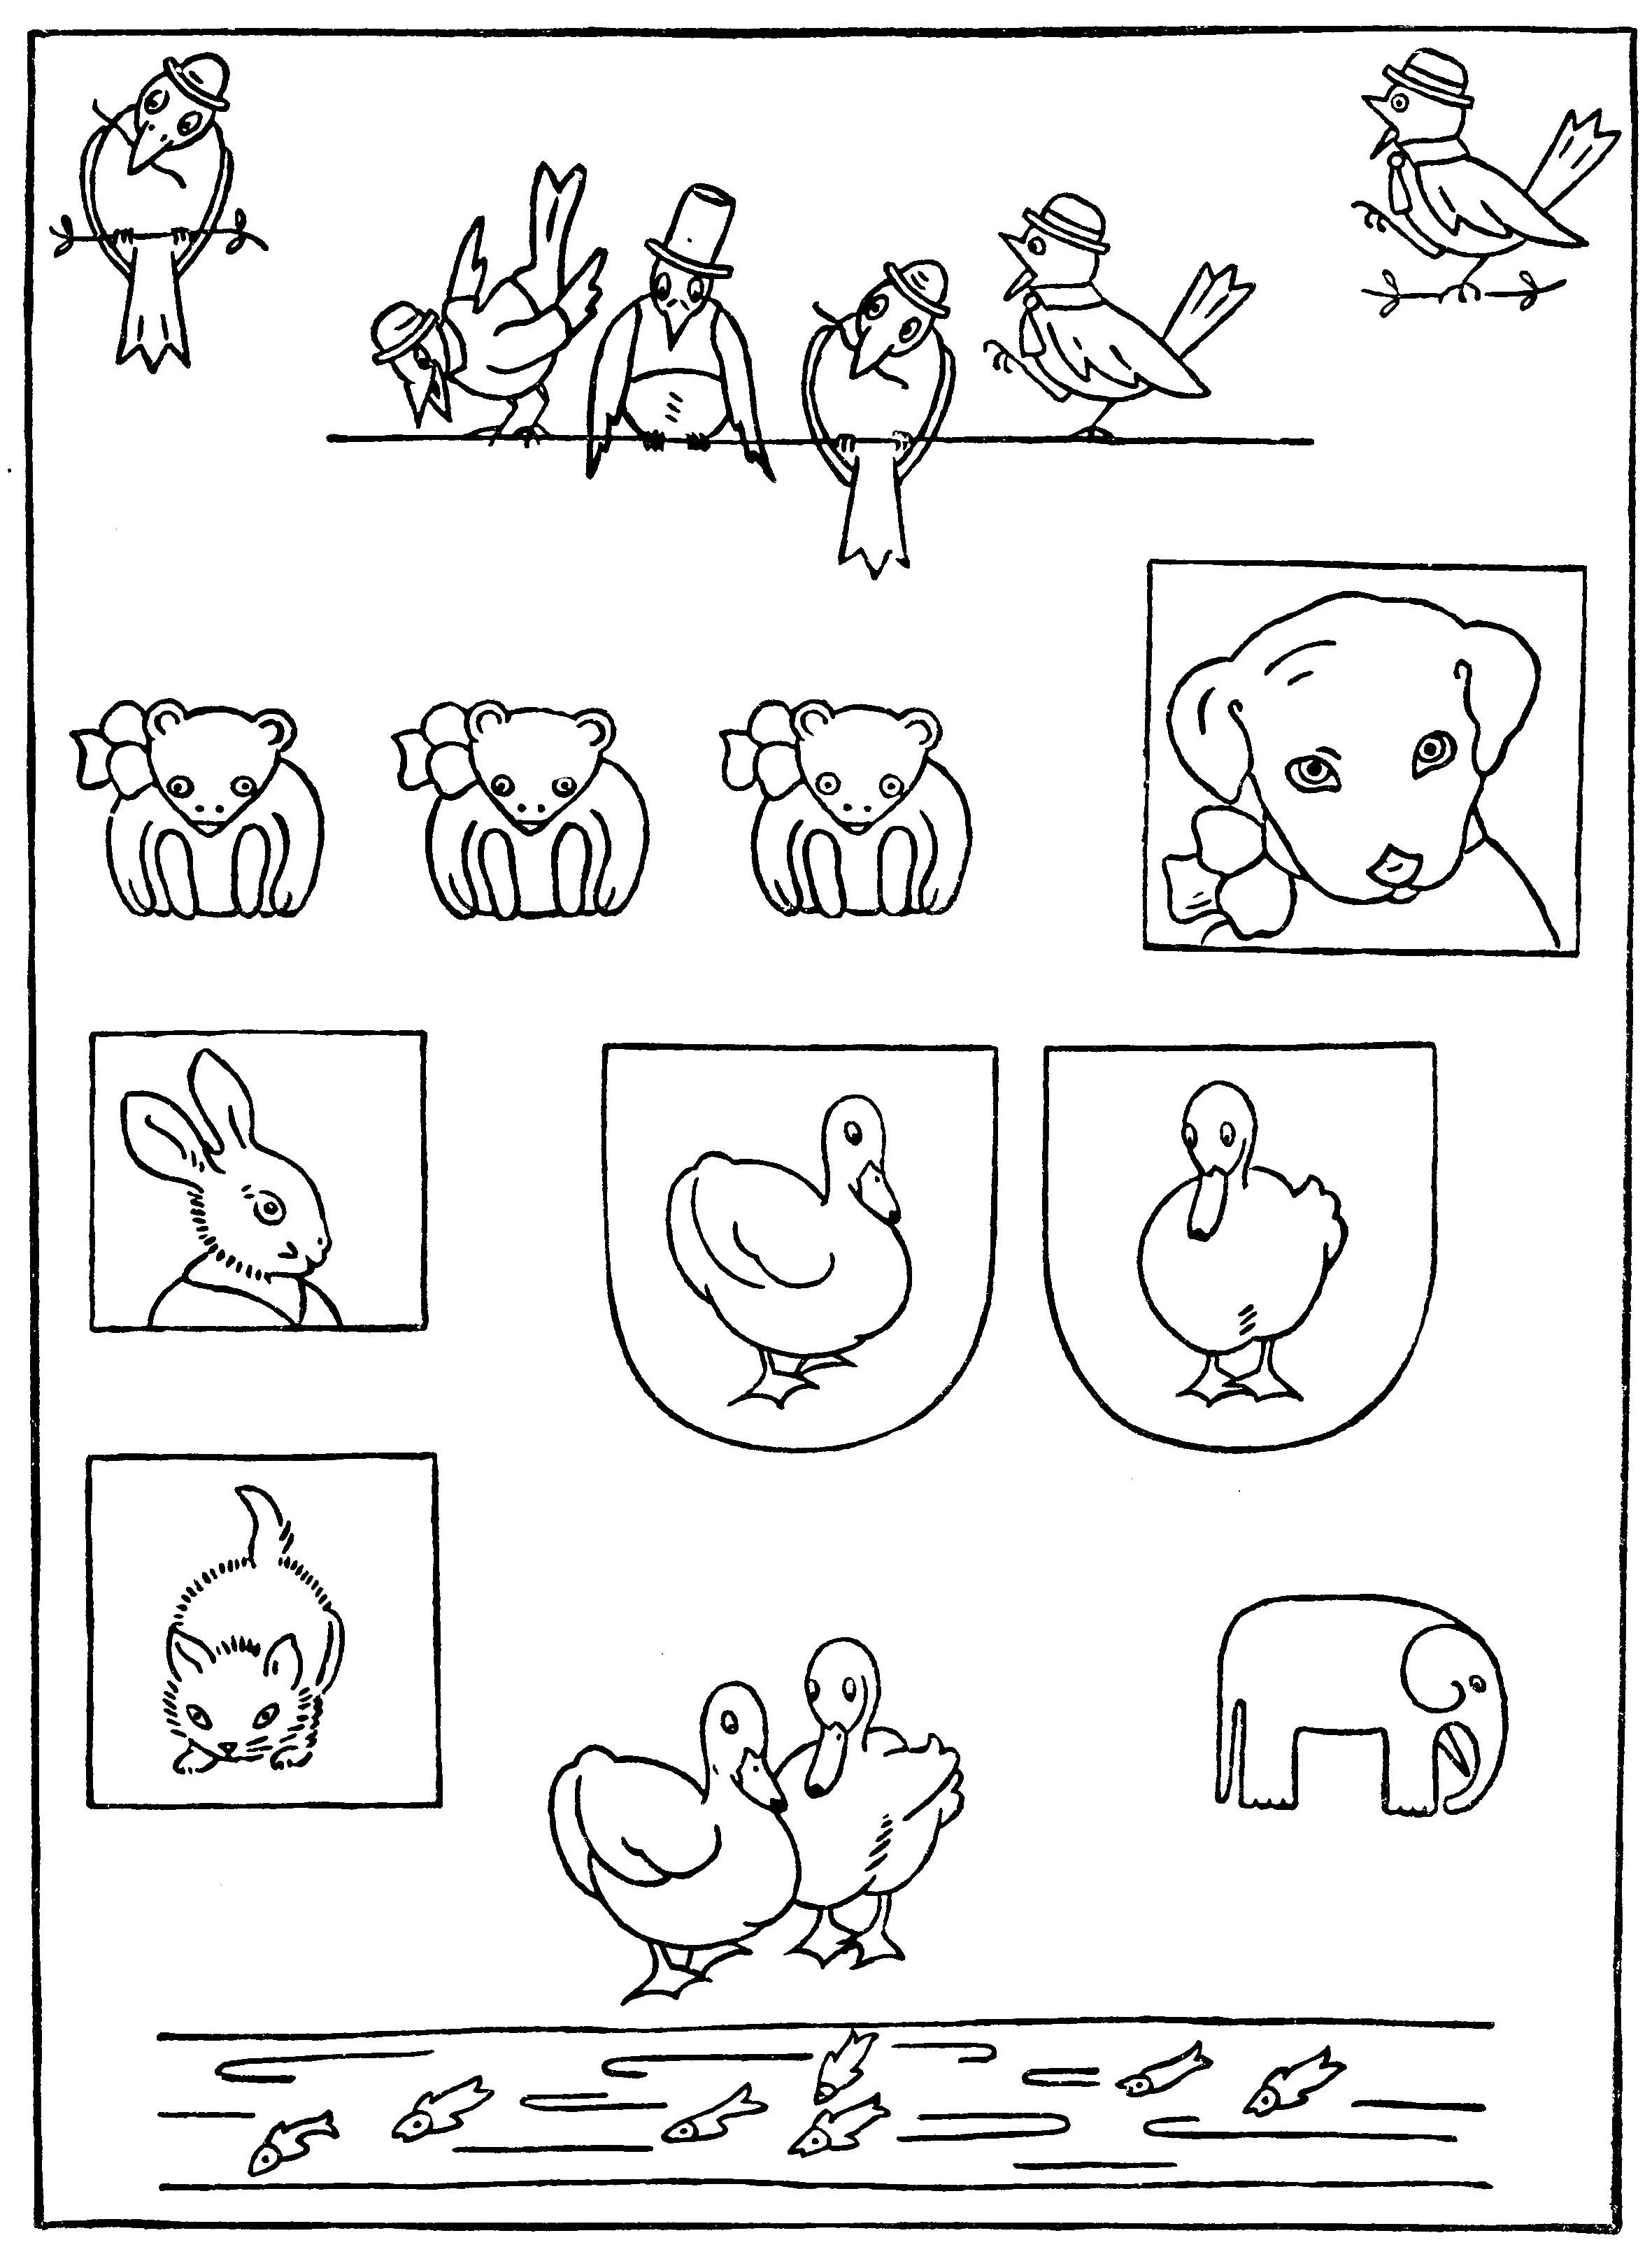 McCalls-1540-Animal-Motifs-for-Outlining-1